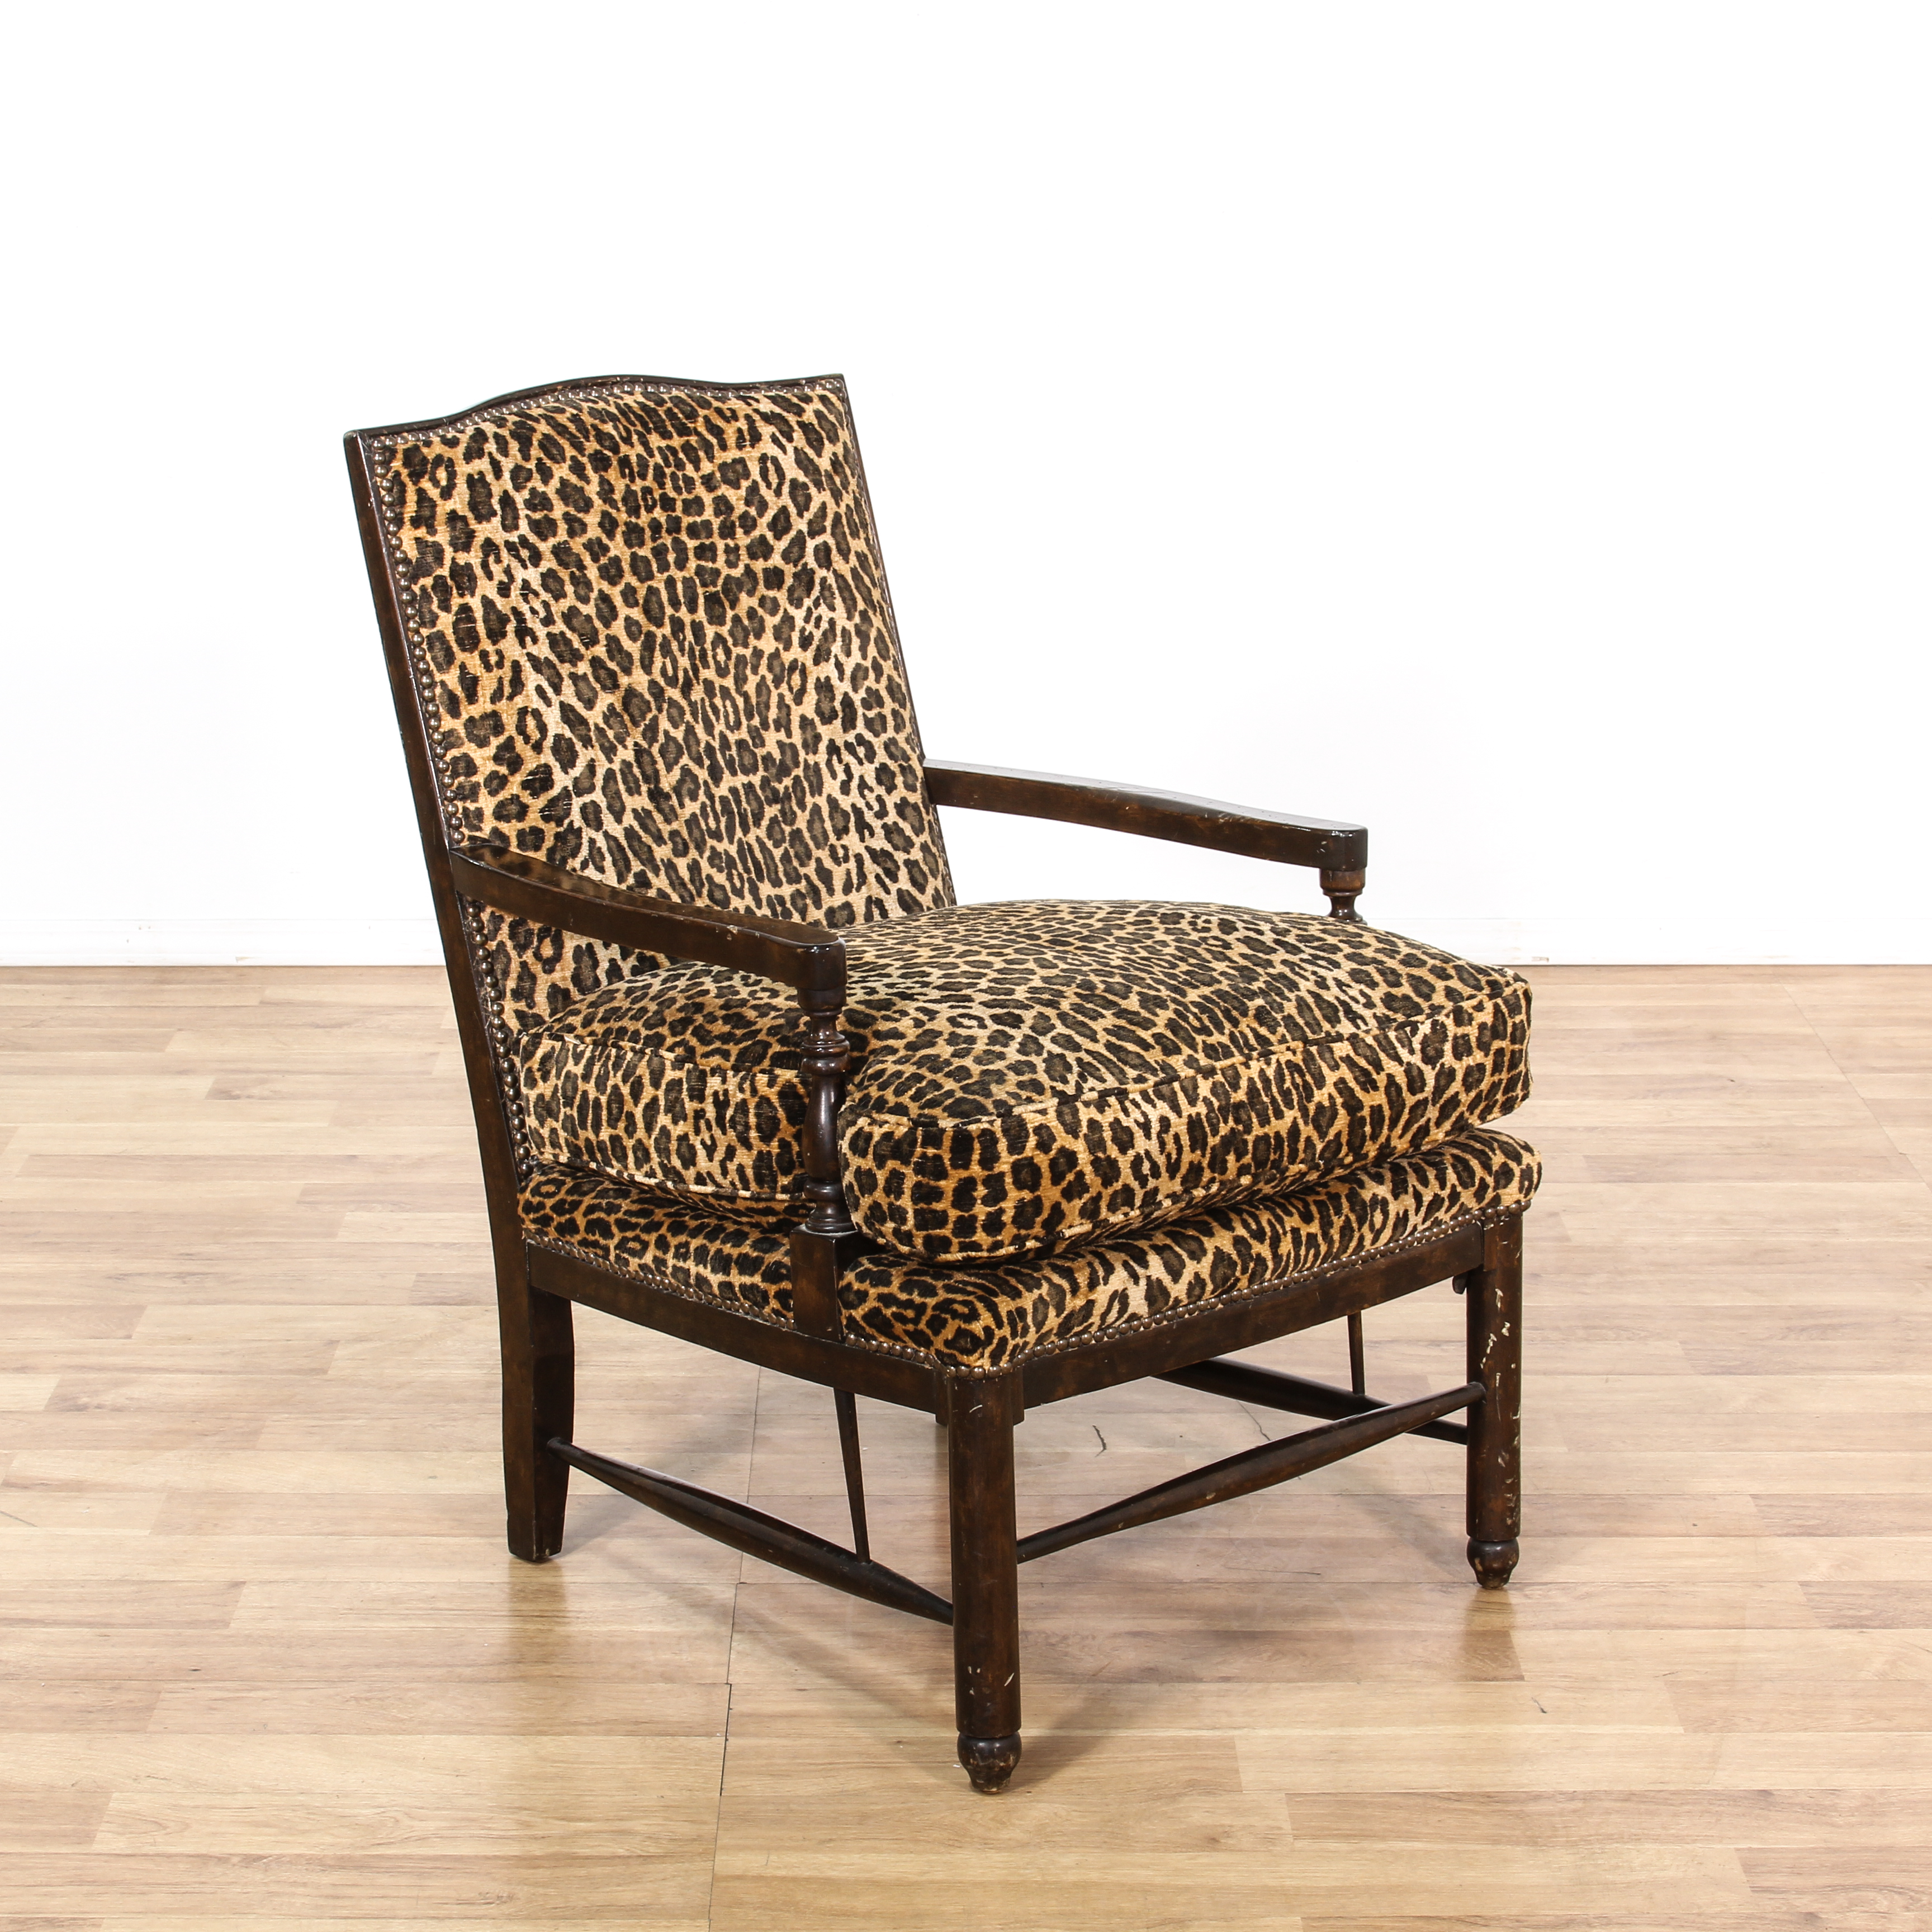 animal print accent chair design within reach womb leopard carved wood loveseat vintage